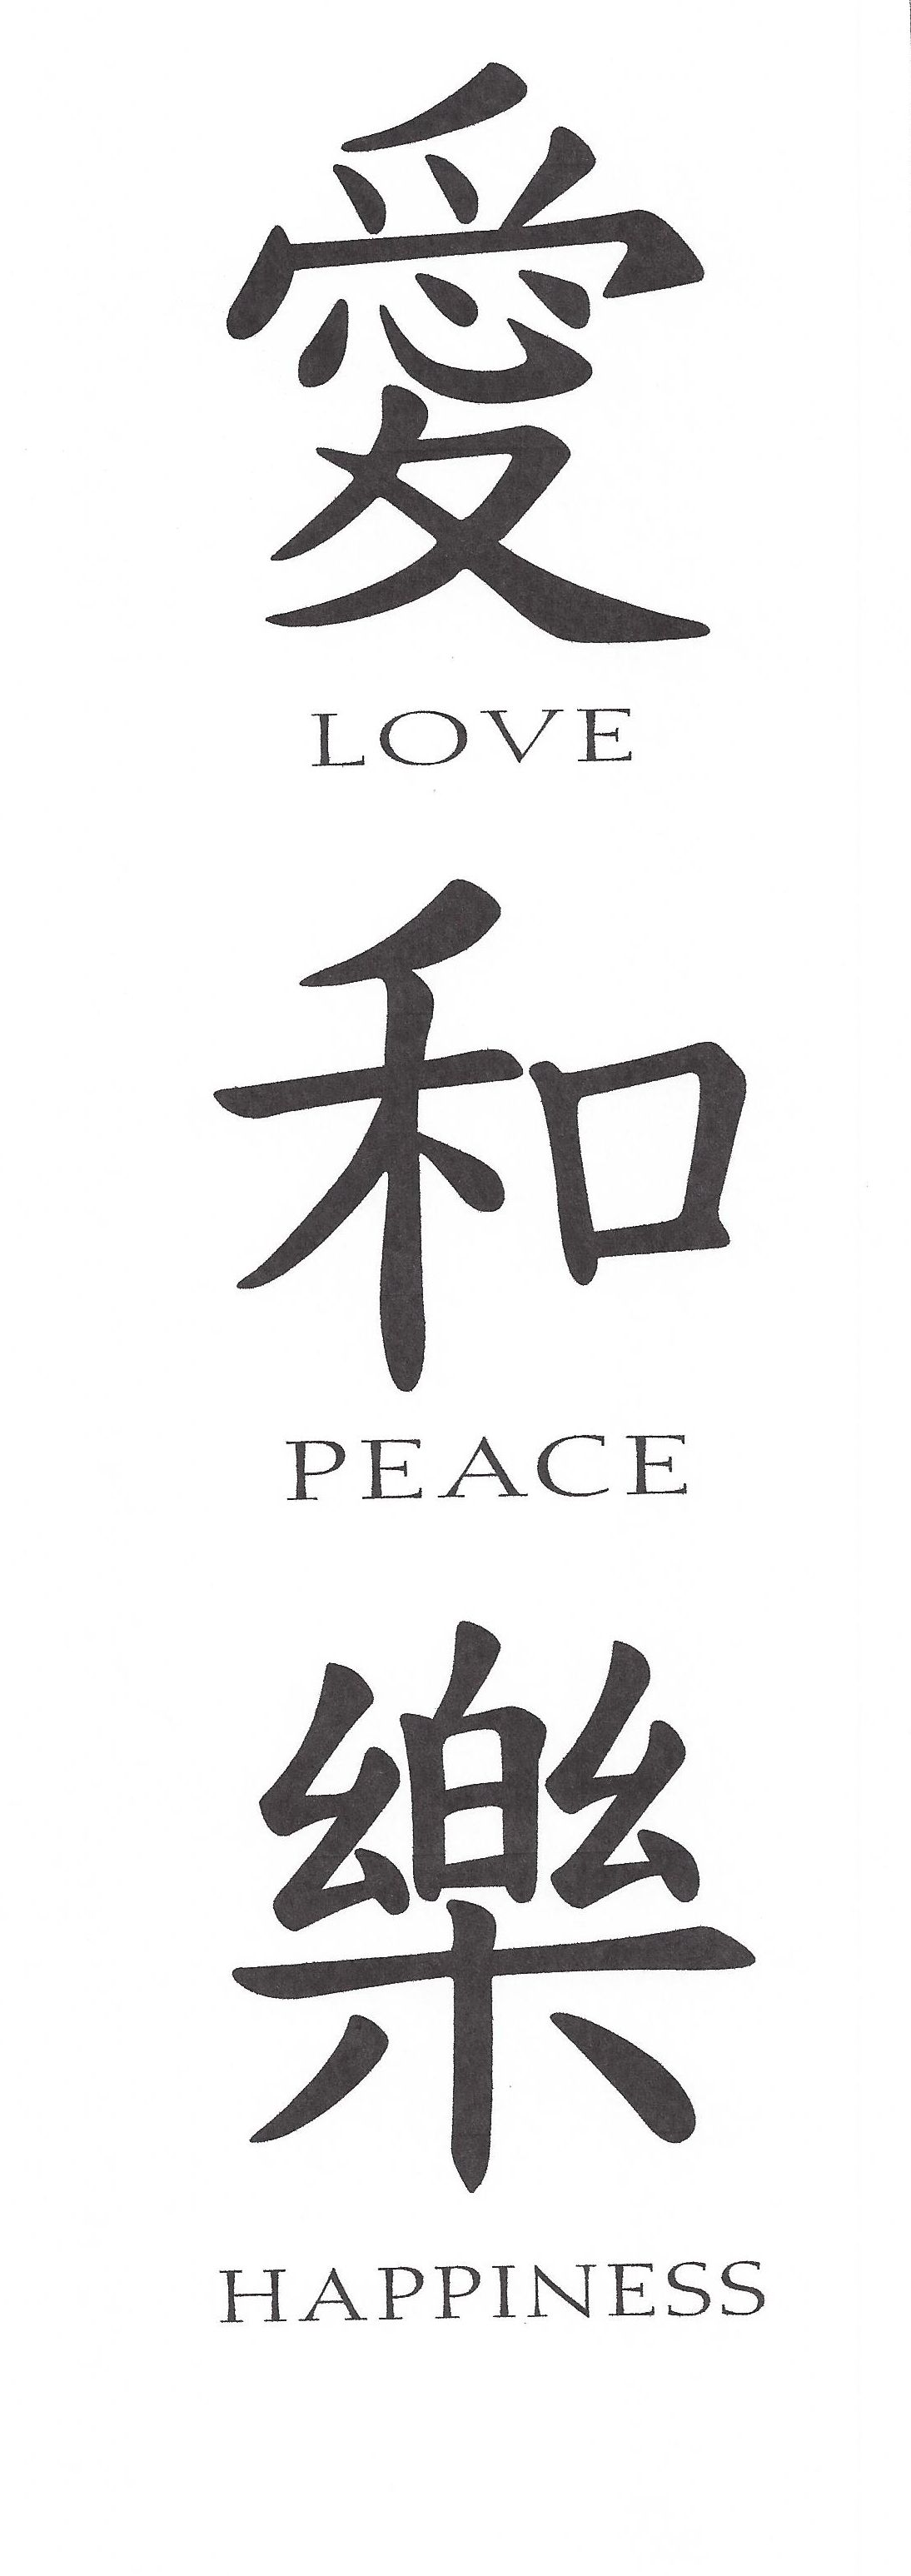 Custom kanji lovepeacehappiness symbol home garden stone made custom kanji lovepeacehappiness symbol home garden stone made from genuine 1 biocorpaavc Image collections